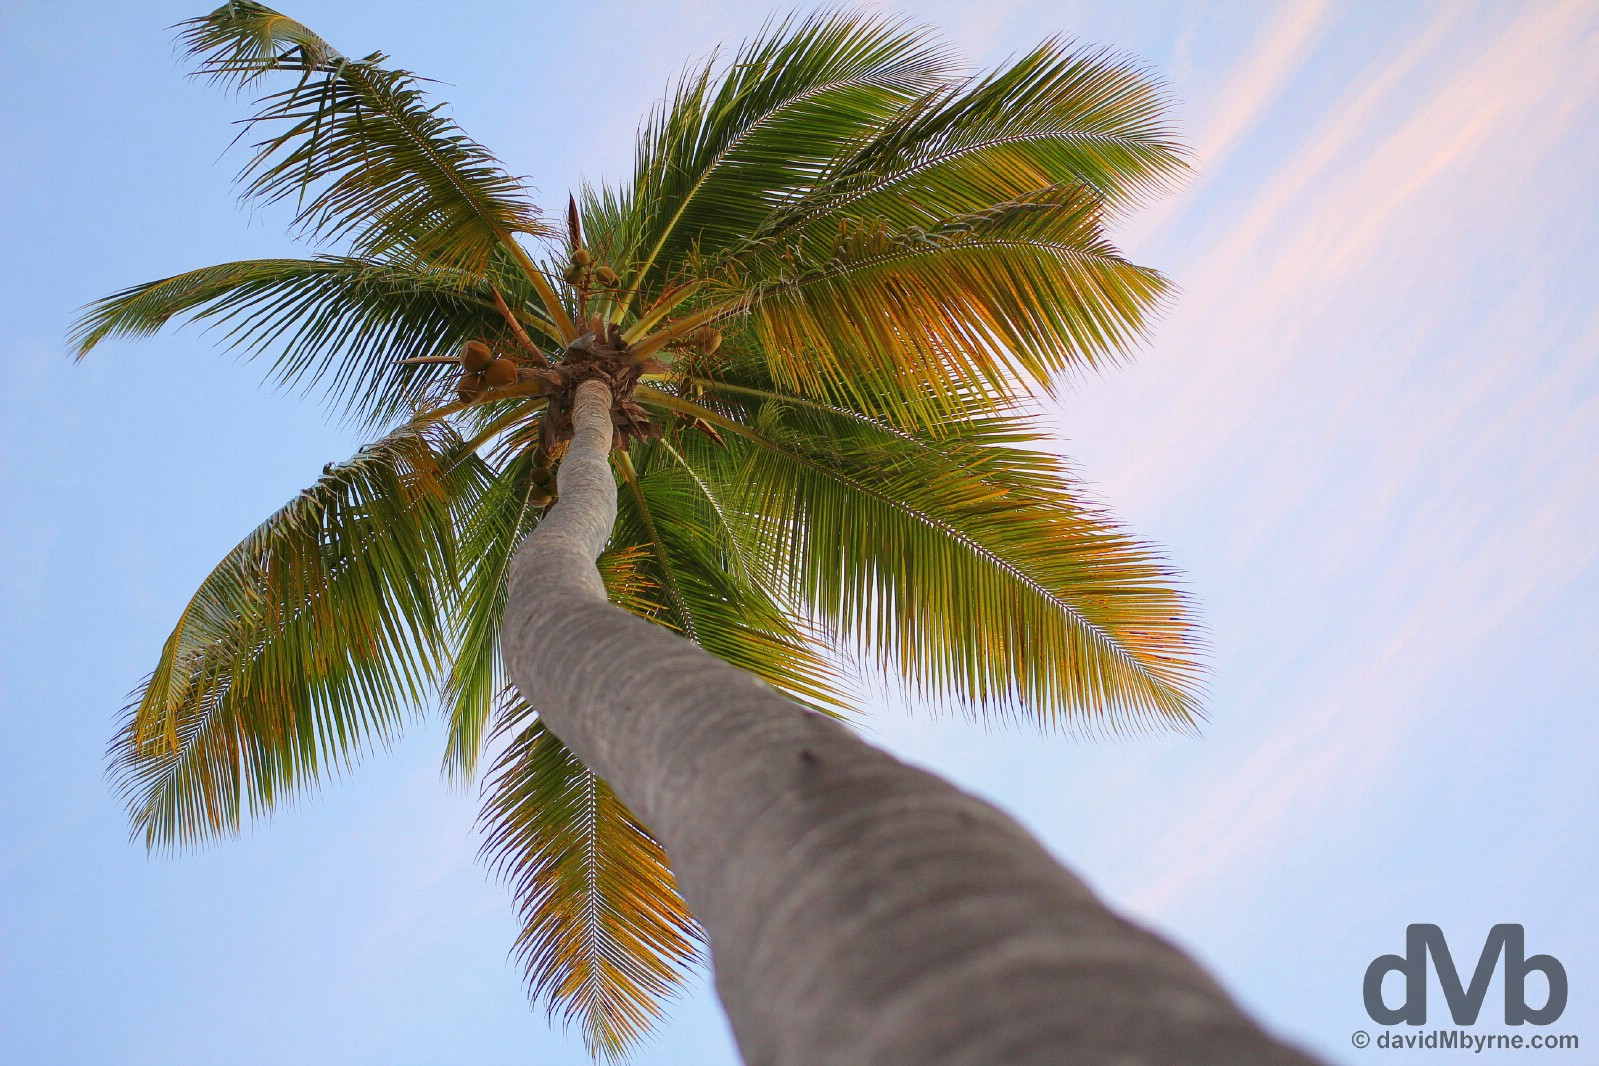 A coconut palm on Bavaro Beach, Punta Cana, Dominican Republic. May 28. 2015.